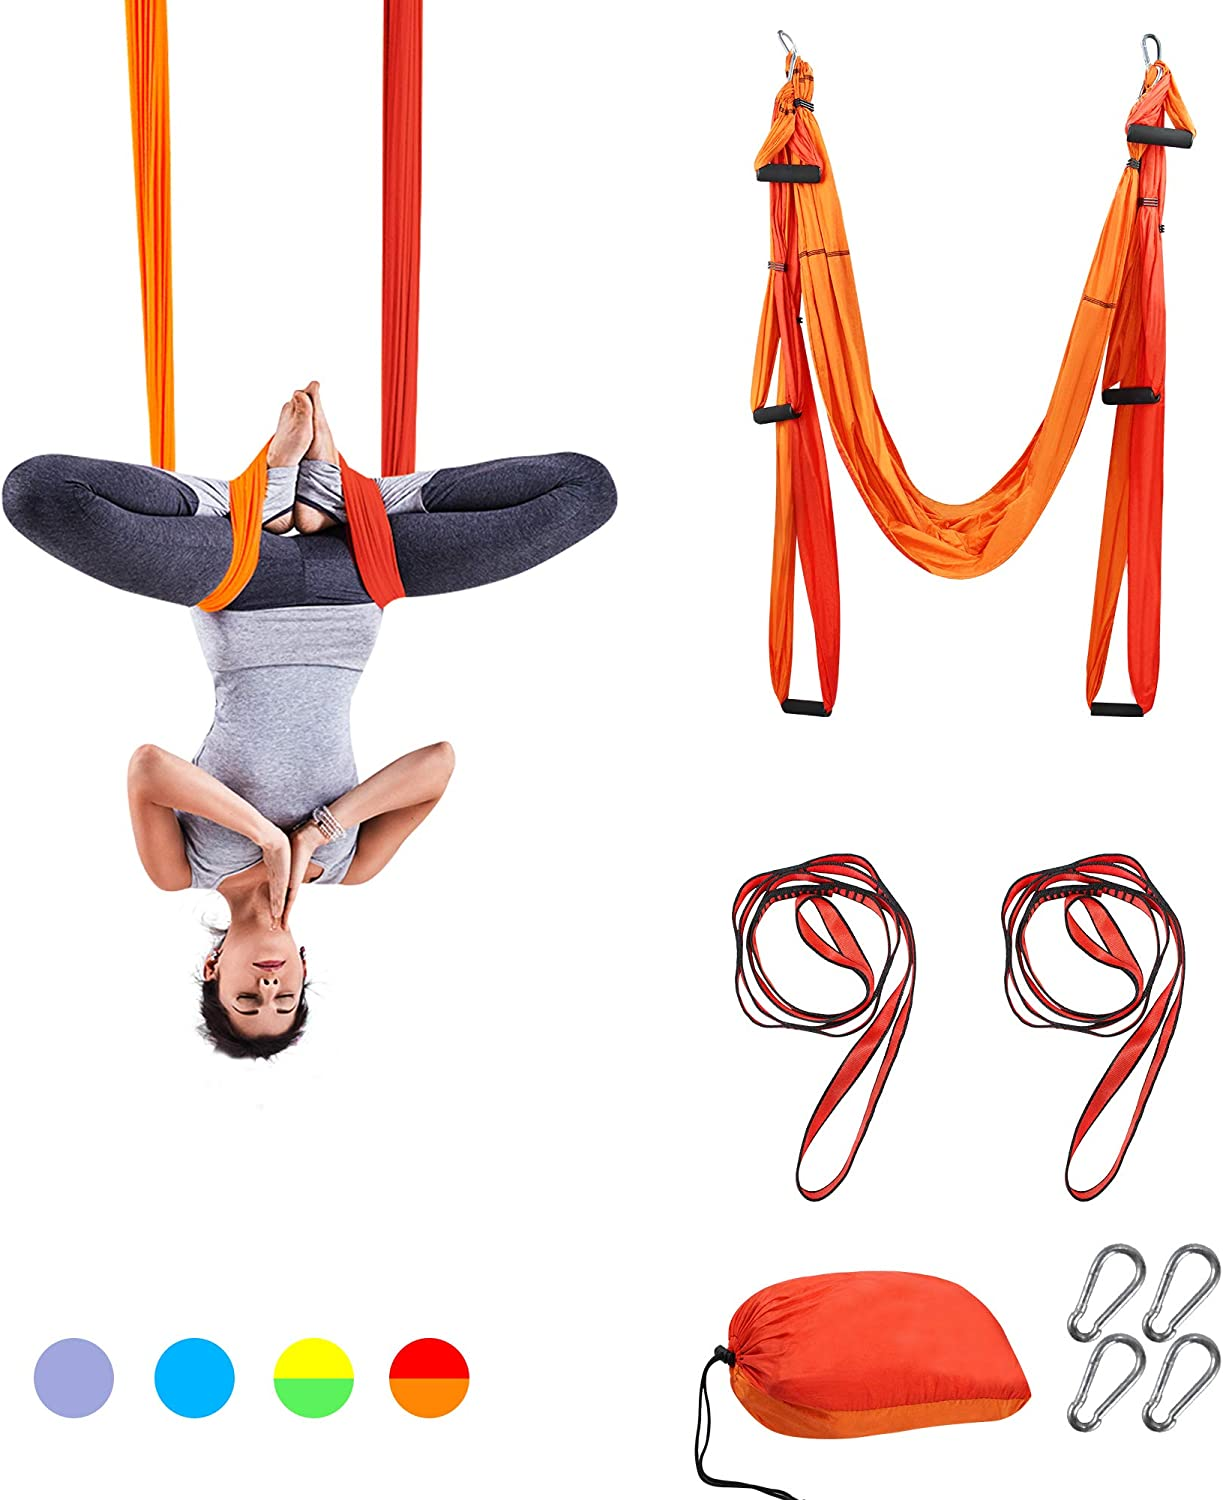 Details about  /Aerial Yoga Swing Trapeze Set Yoga Sling Hammock-gravity Inversion Fitness,Green